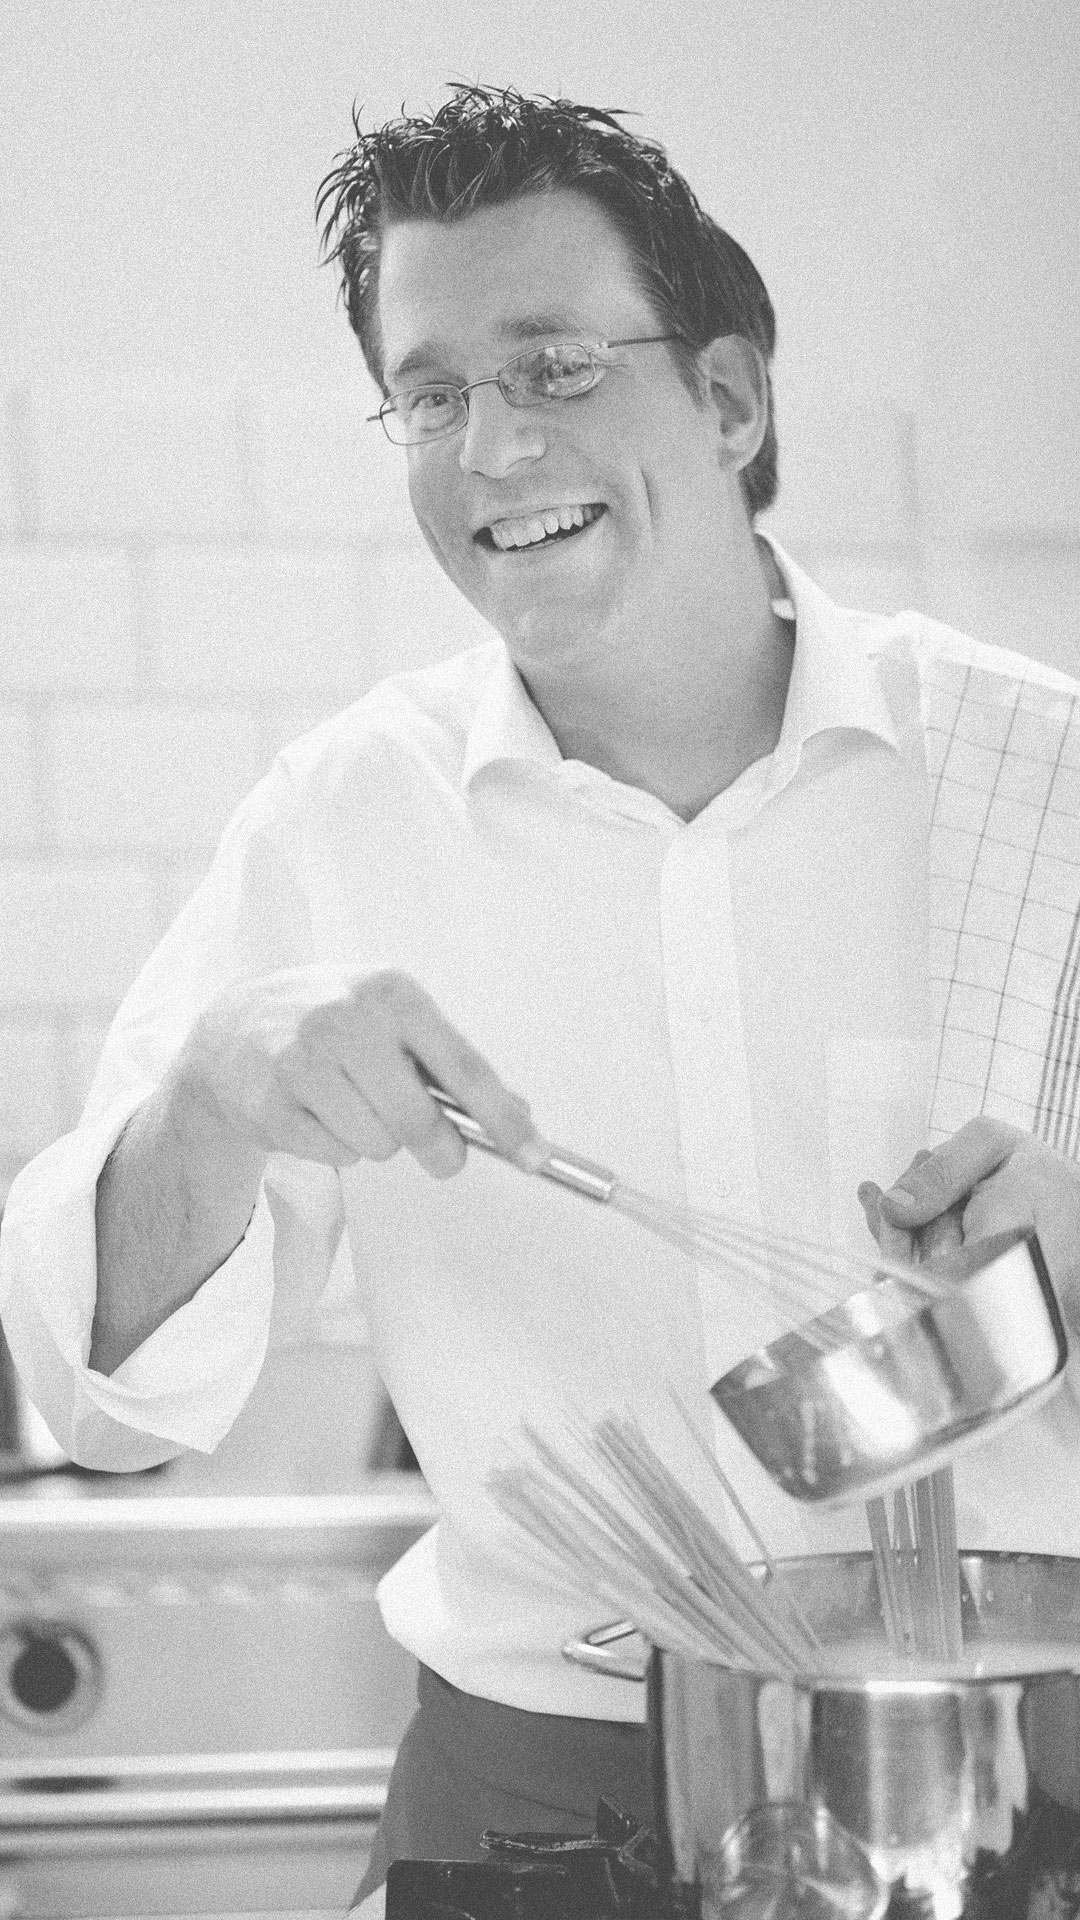 Catering Fullservice für Events | finefood catering